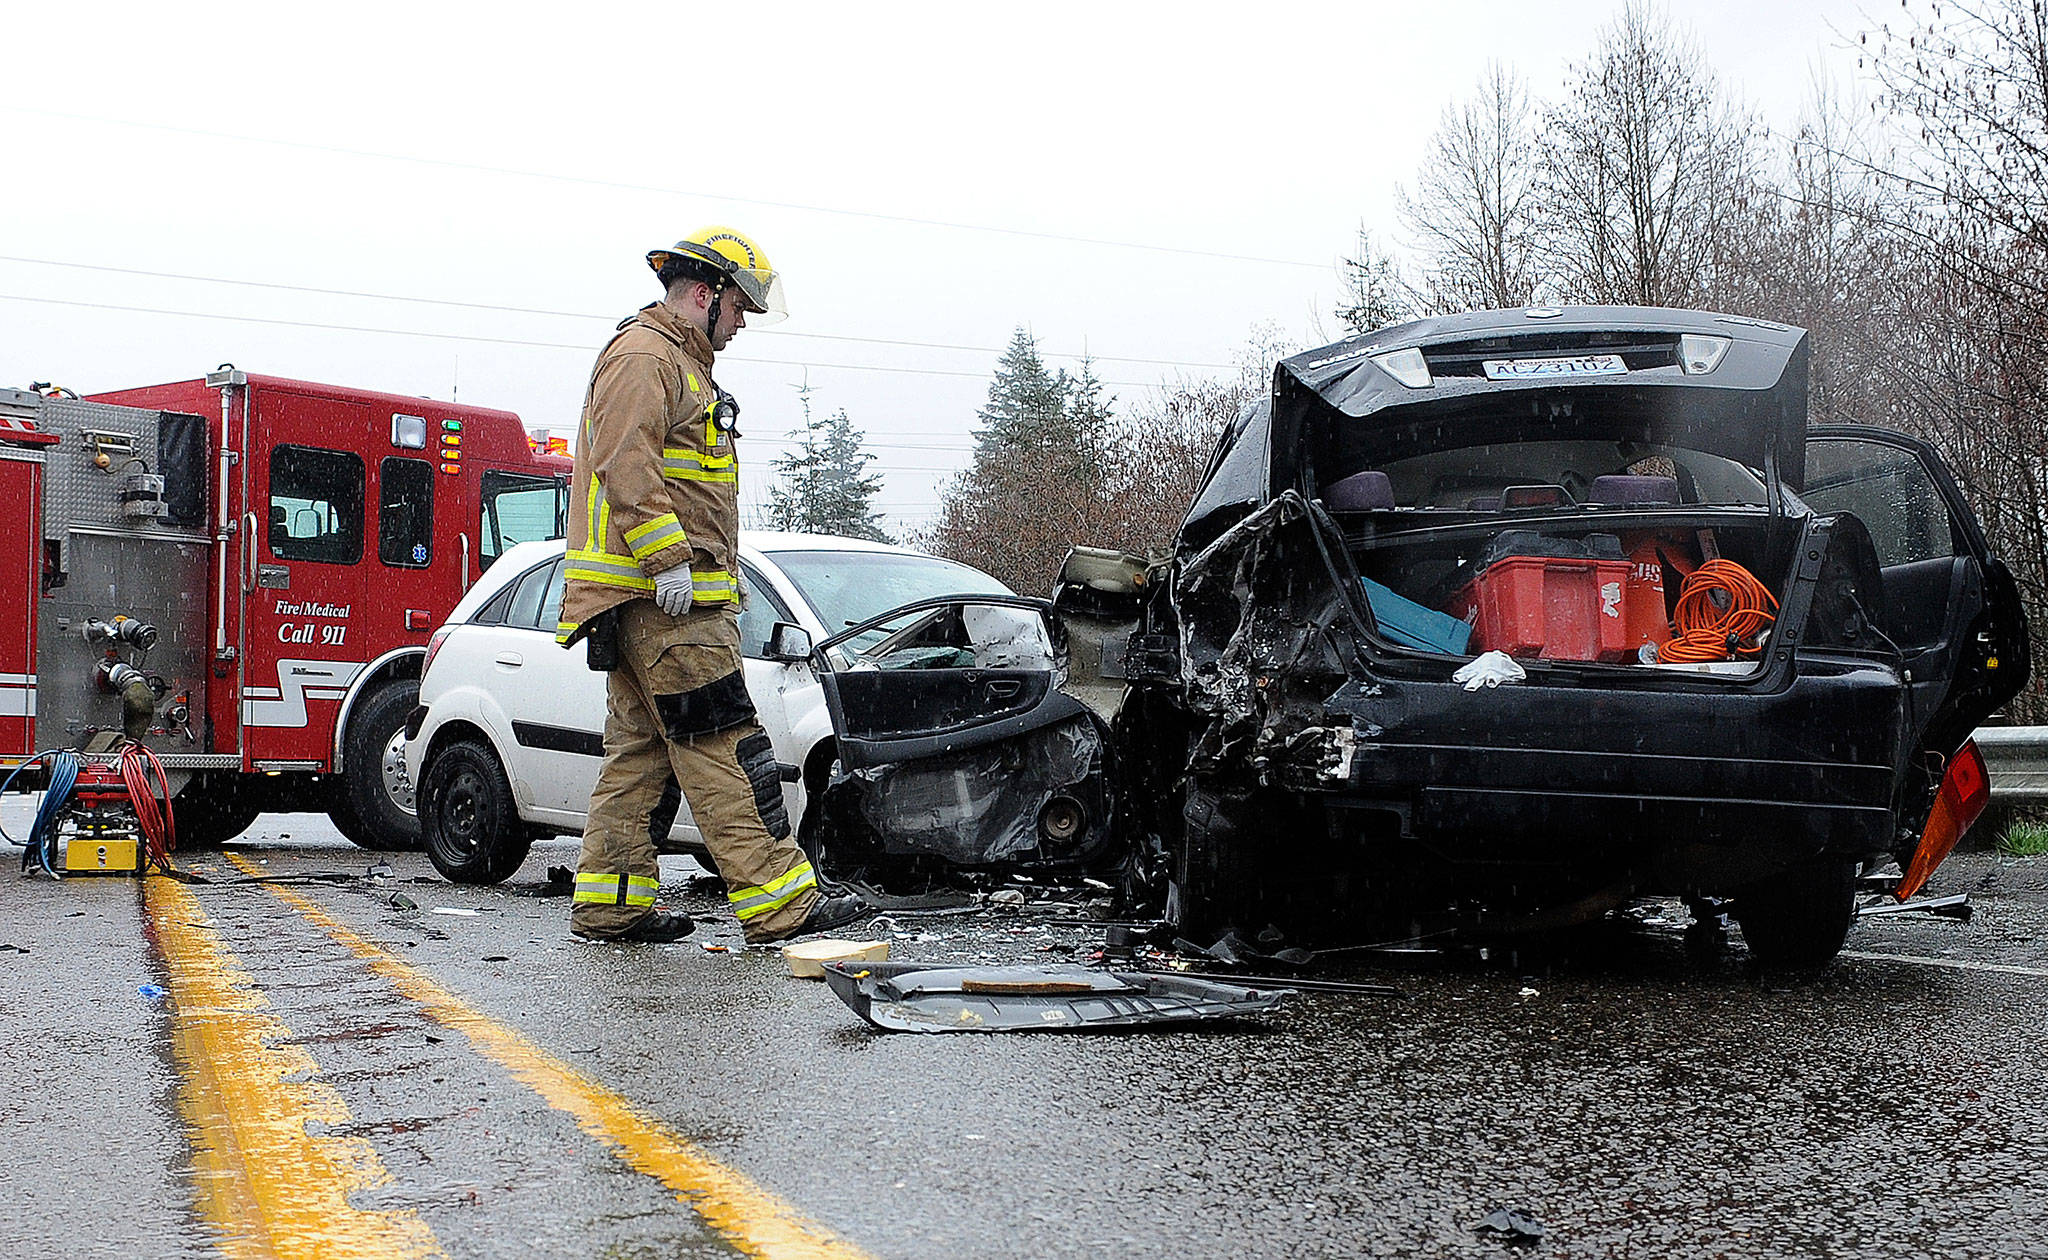 A firefighter looks over the aftermath of a head-on crash March 18 on U.S. 2, near Bickford Avenue, that cost a woman her life. The state is considering installing concrete median barriers on the highway between Bickford and the Pilchuck River. This crash happened near that stretch. (Doug Ramsay/ For The Herald)